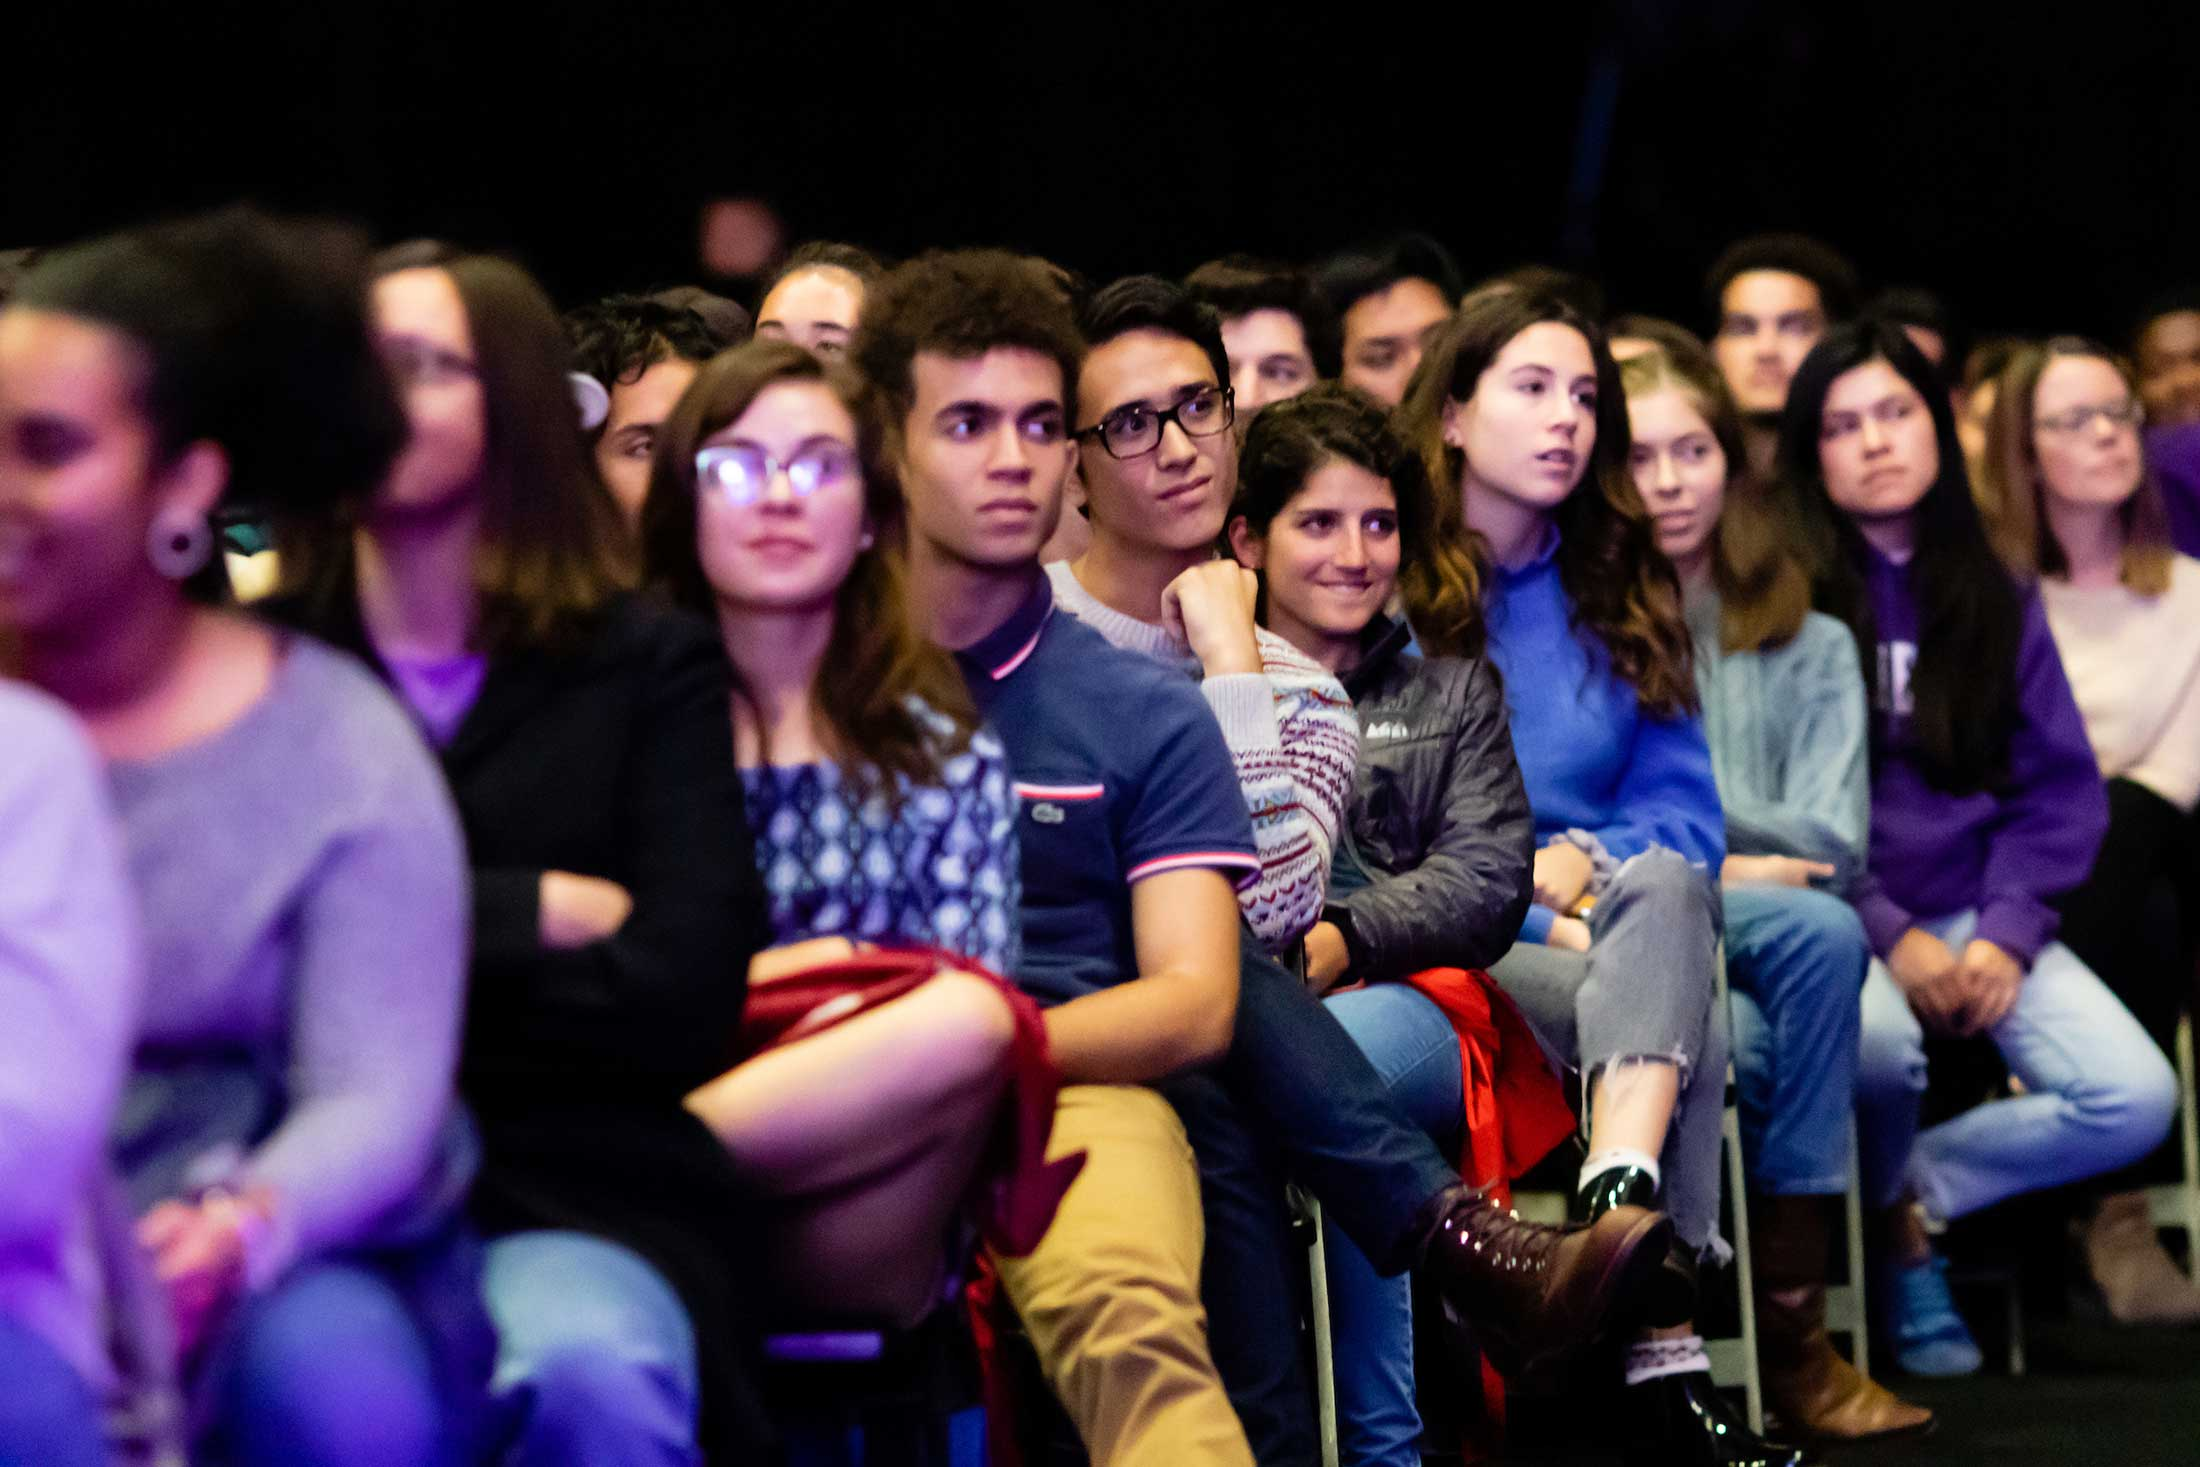 audience members listening attentively to Justice Ginsburg